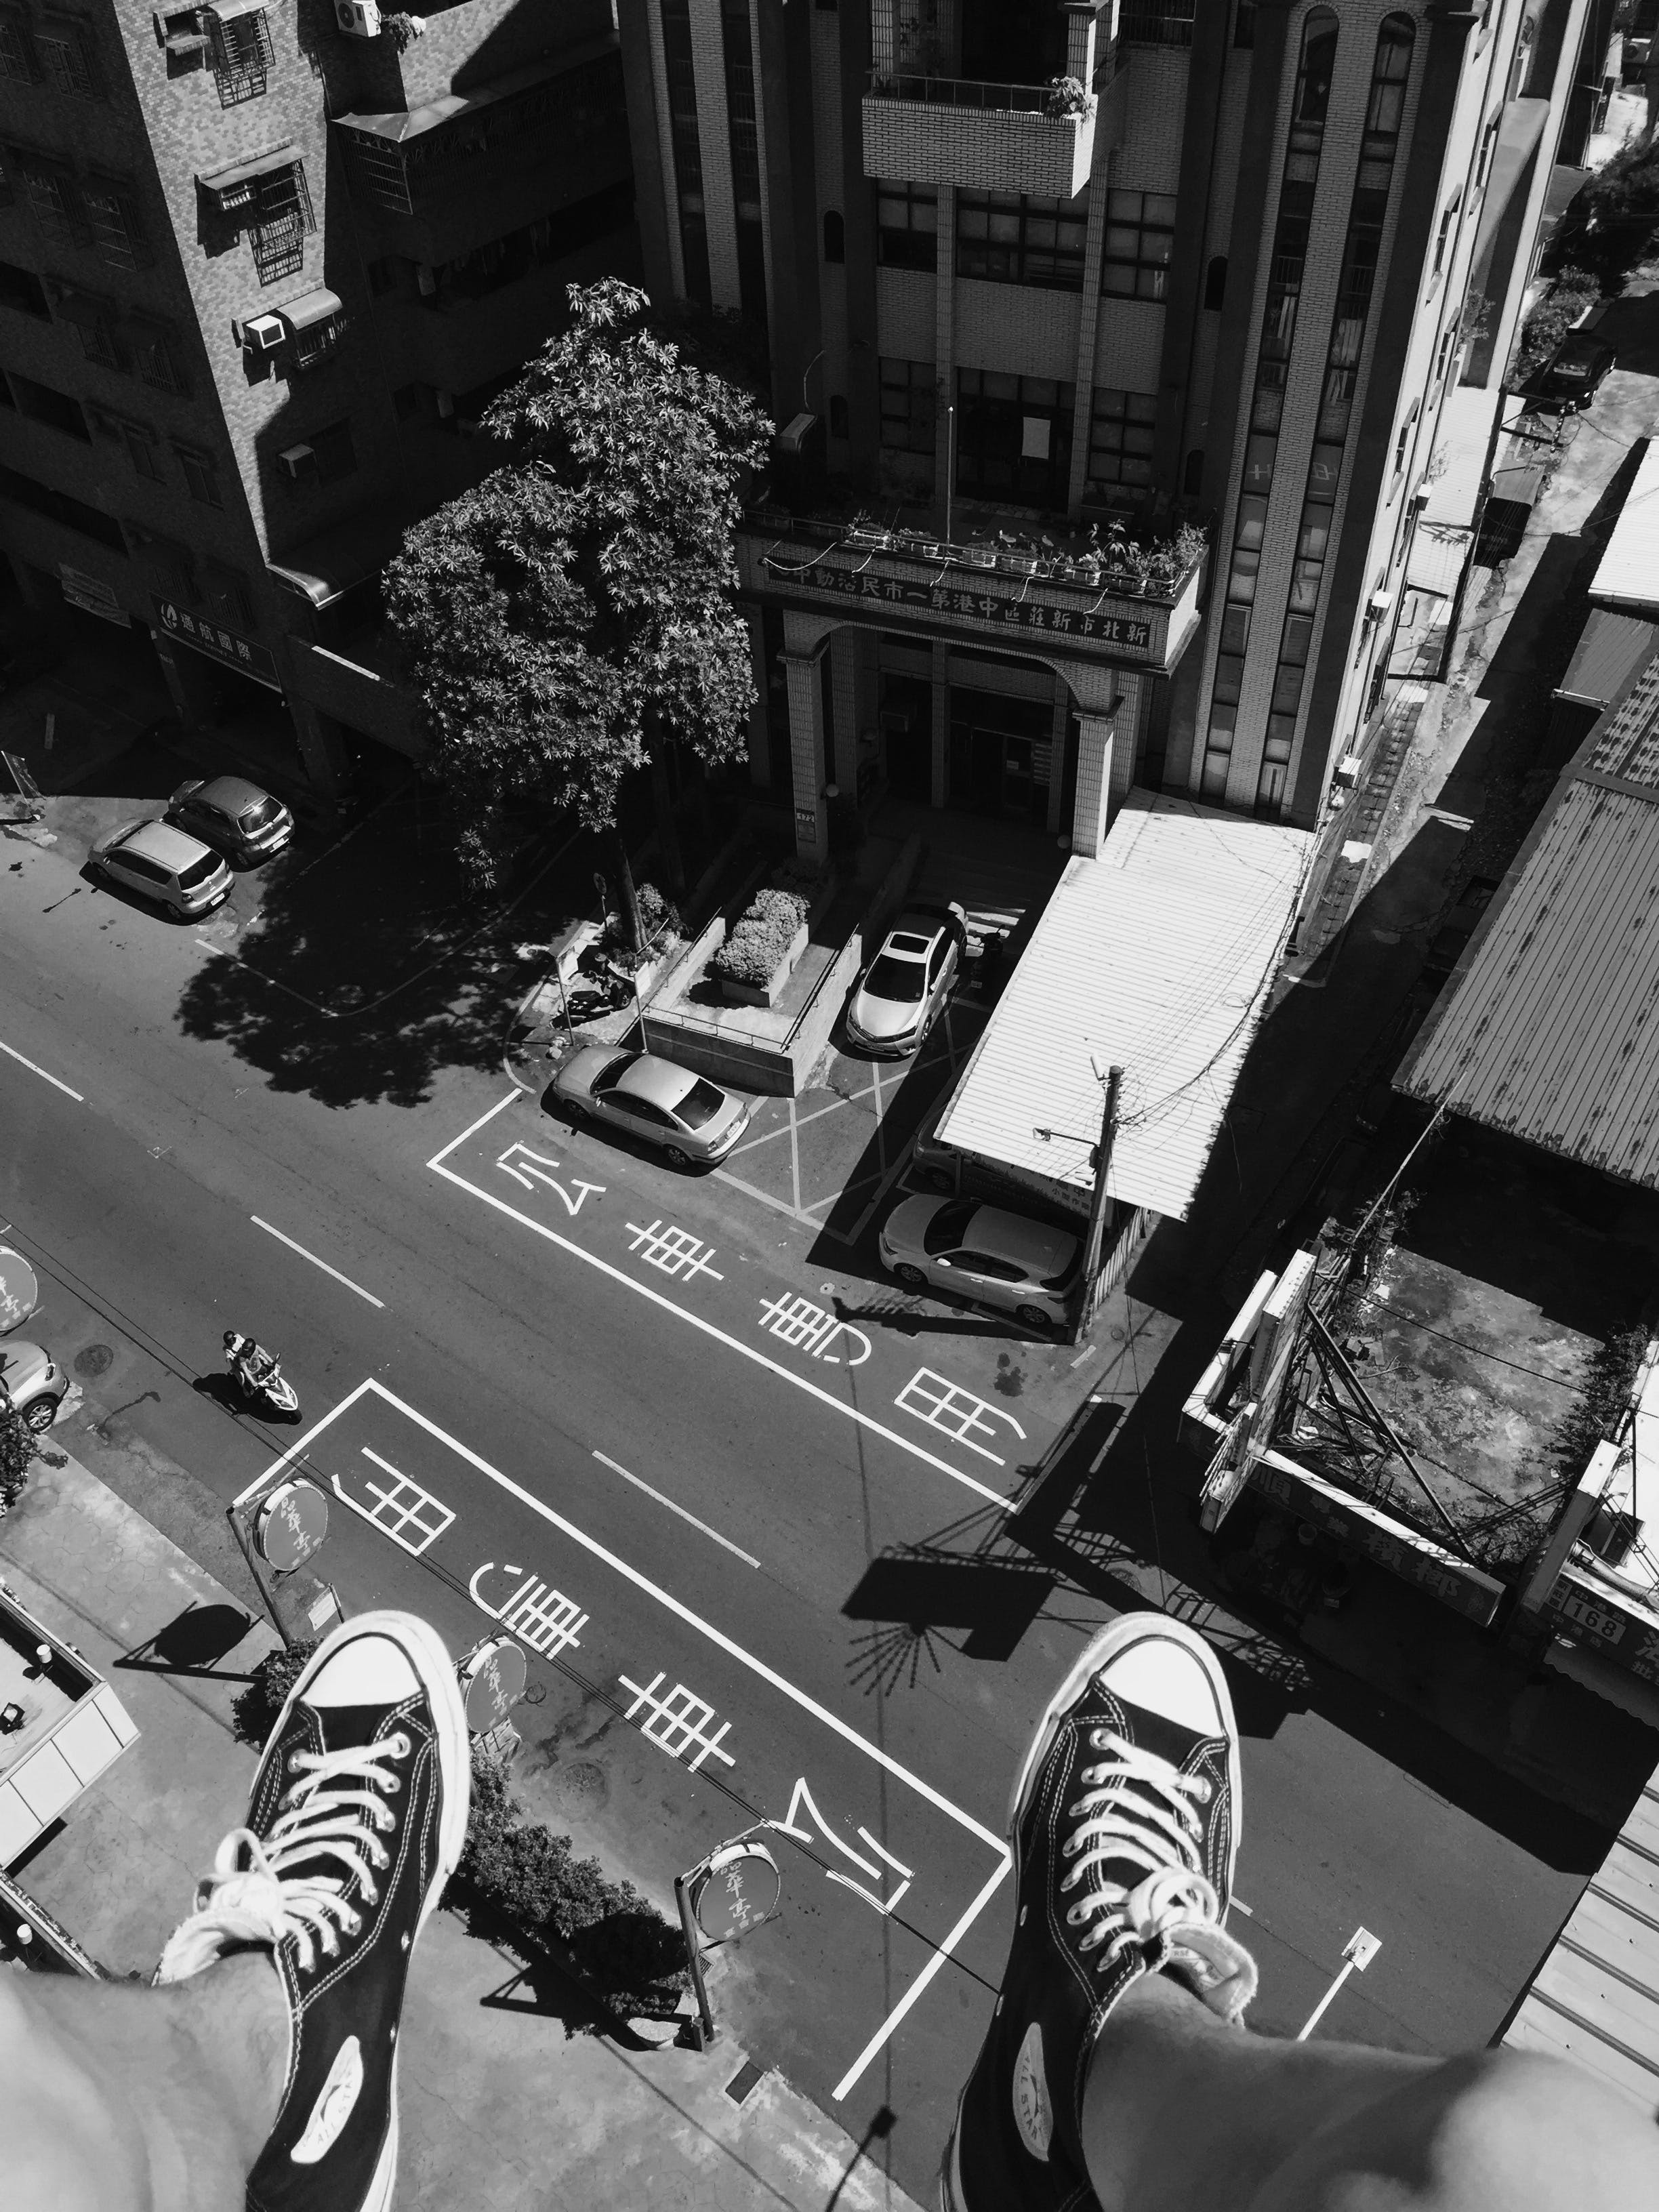 Grayscale Photography Man Wearing All Star Converse High Tops Below in Street and Building